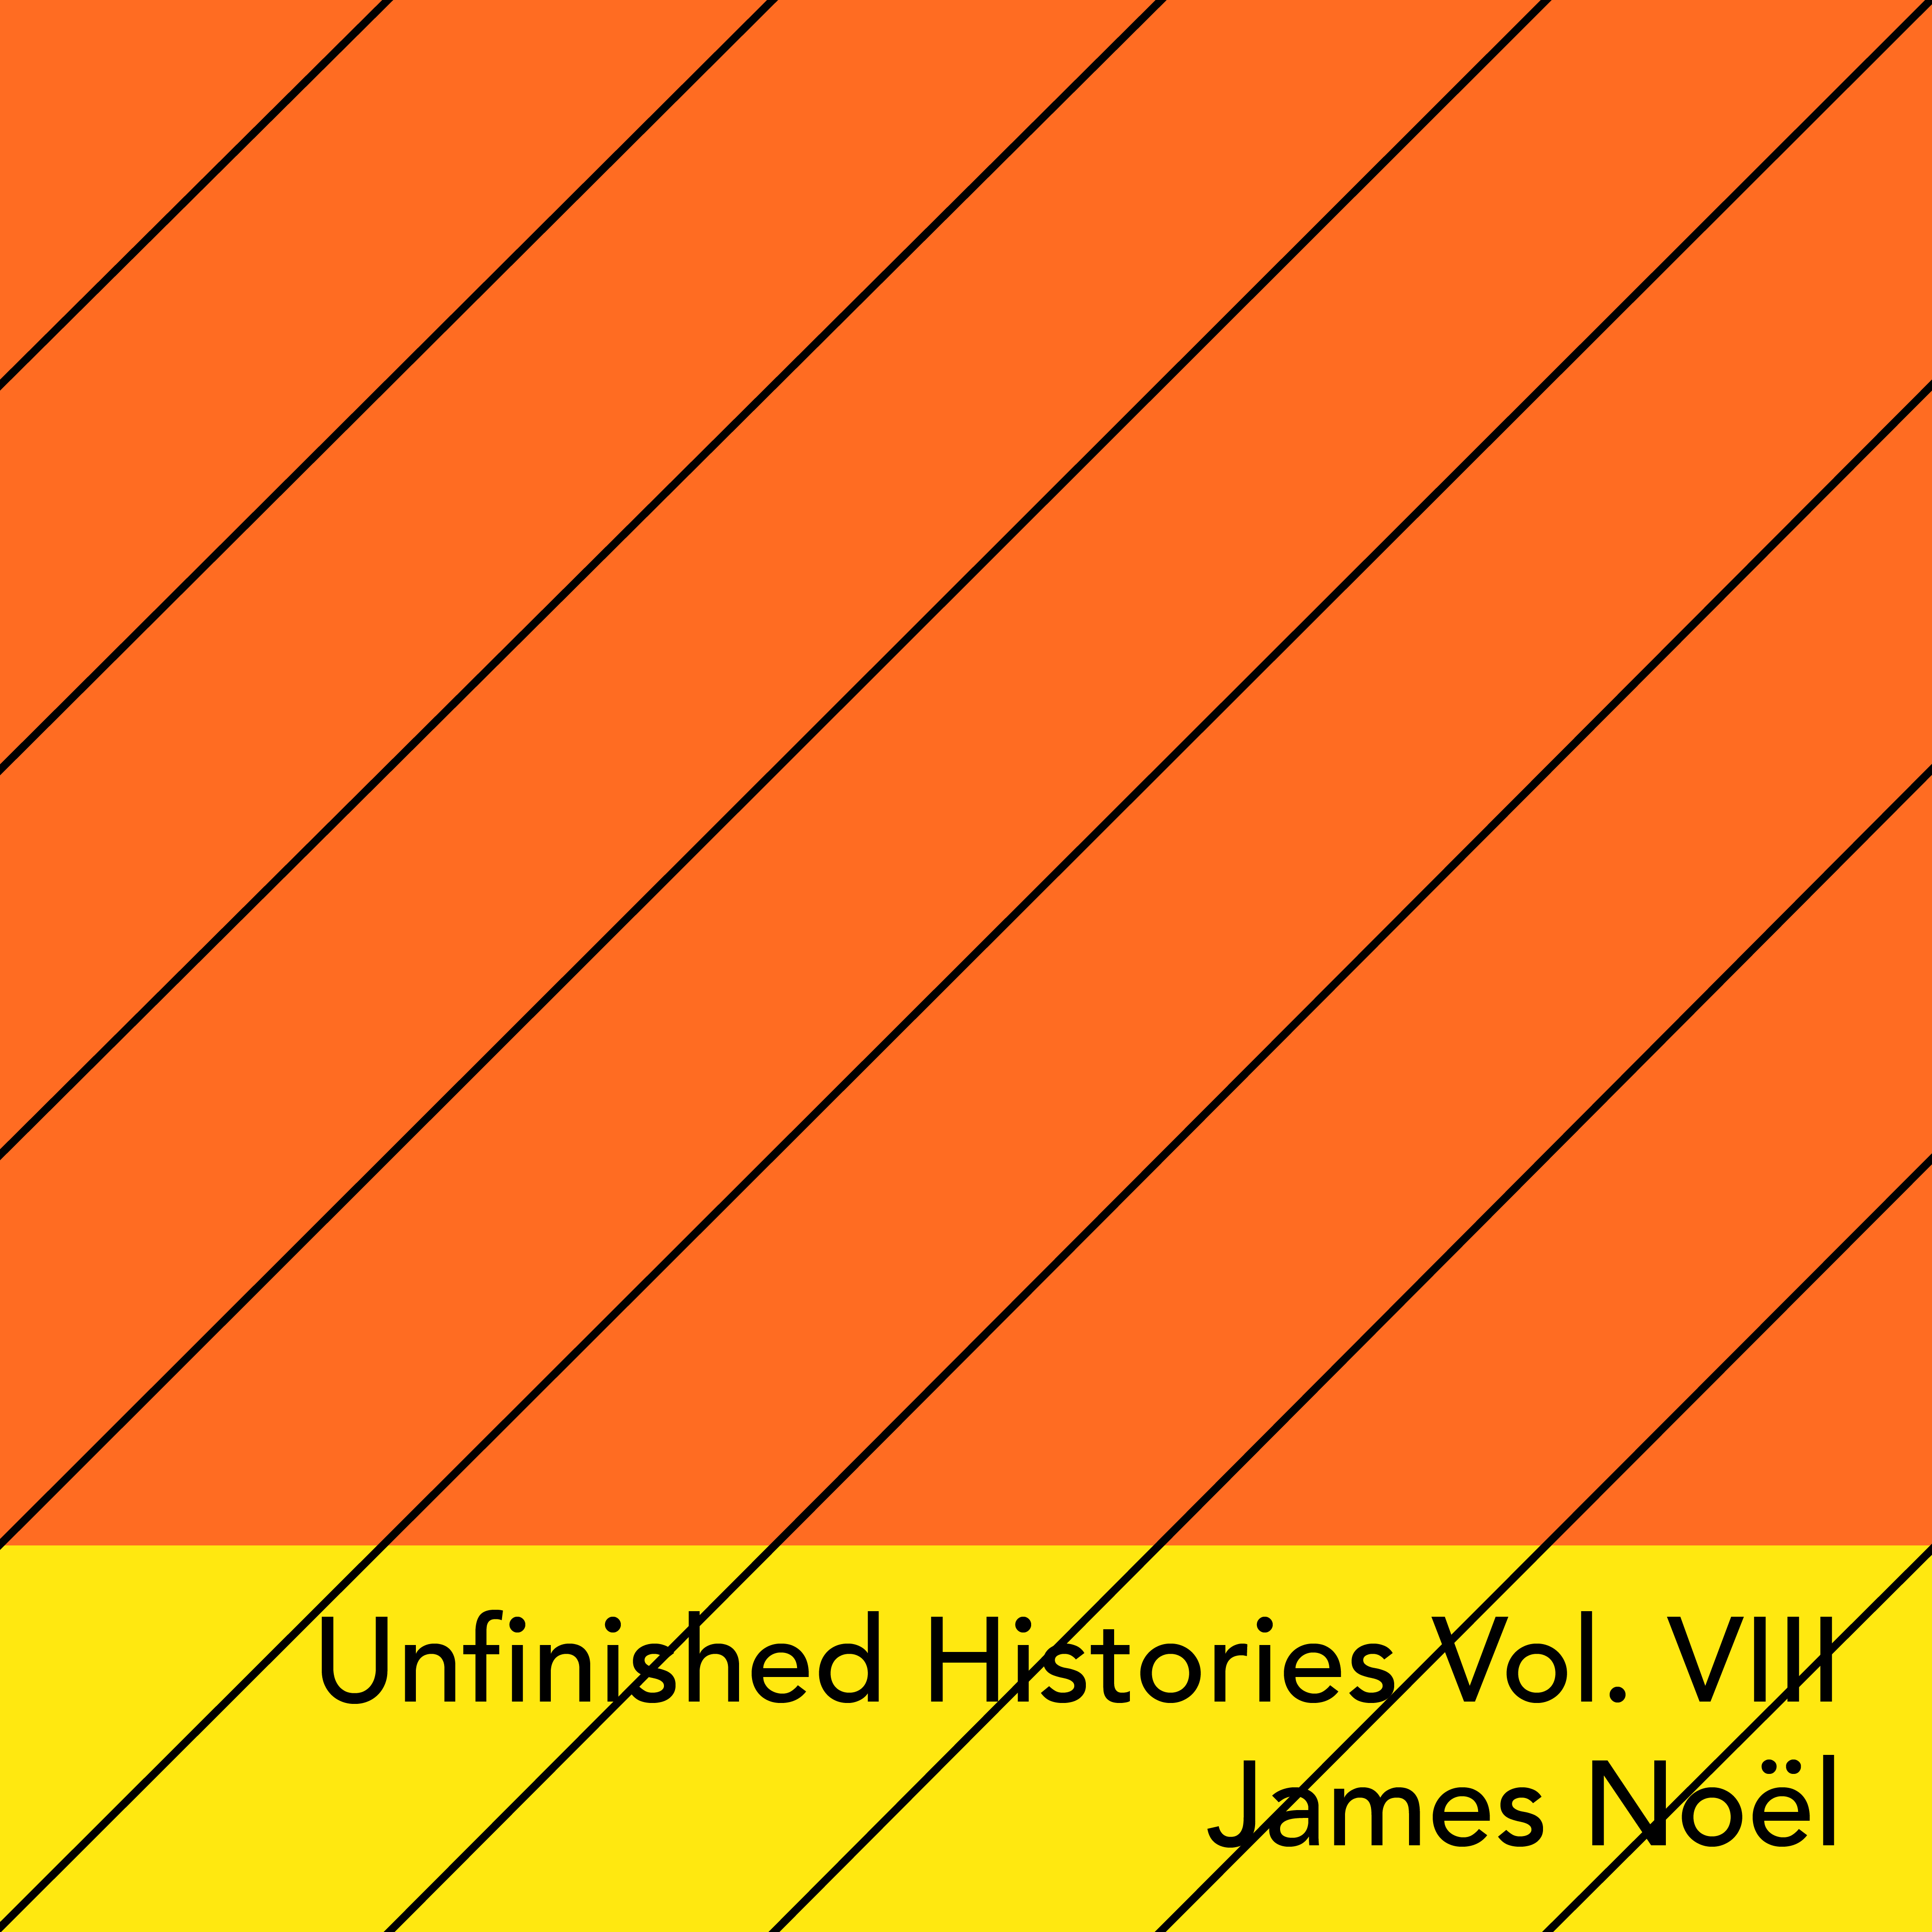 Minimalistische Grafik, Horizontale Linien und der Text: Unfinished Histories 8, James Noël